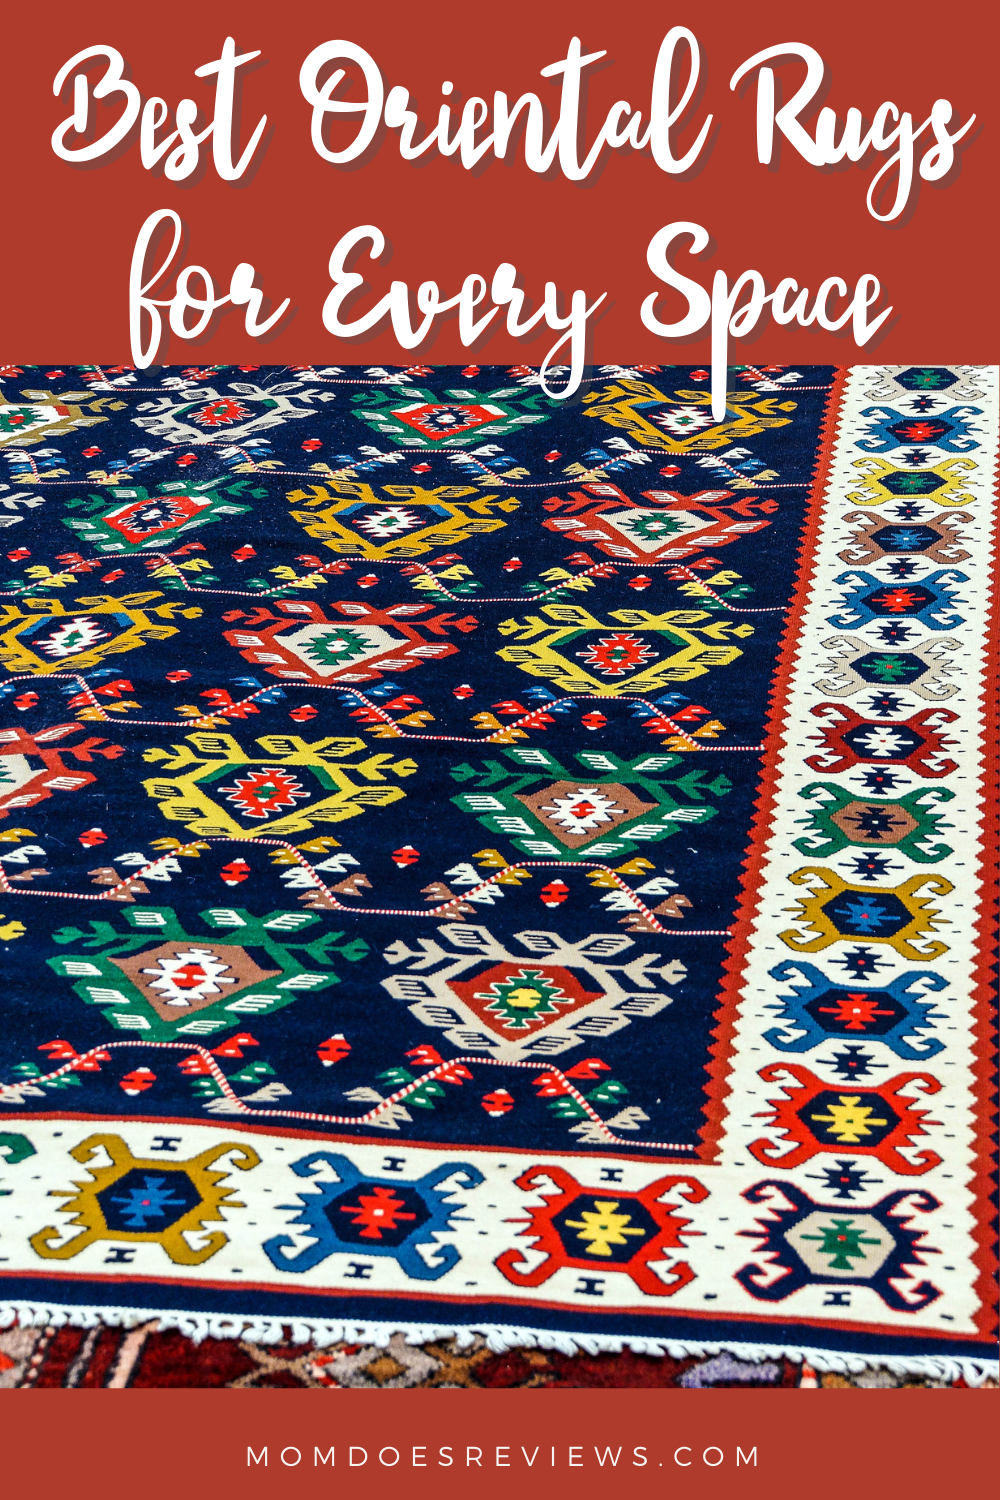 Best Oriental Rugs for Every Space